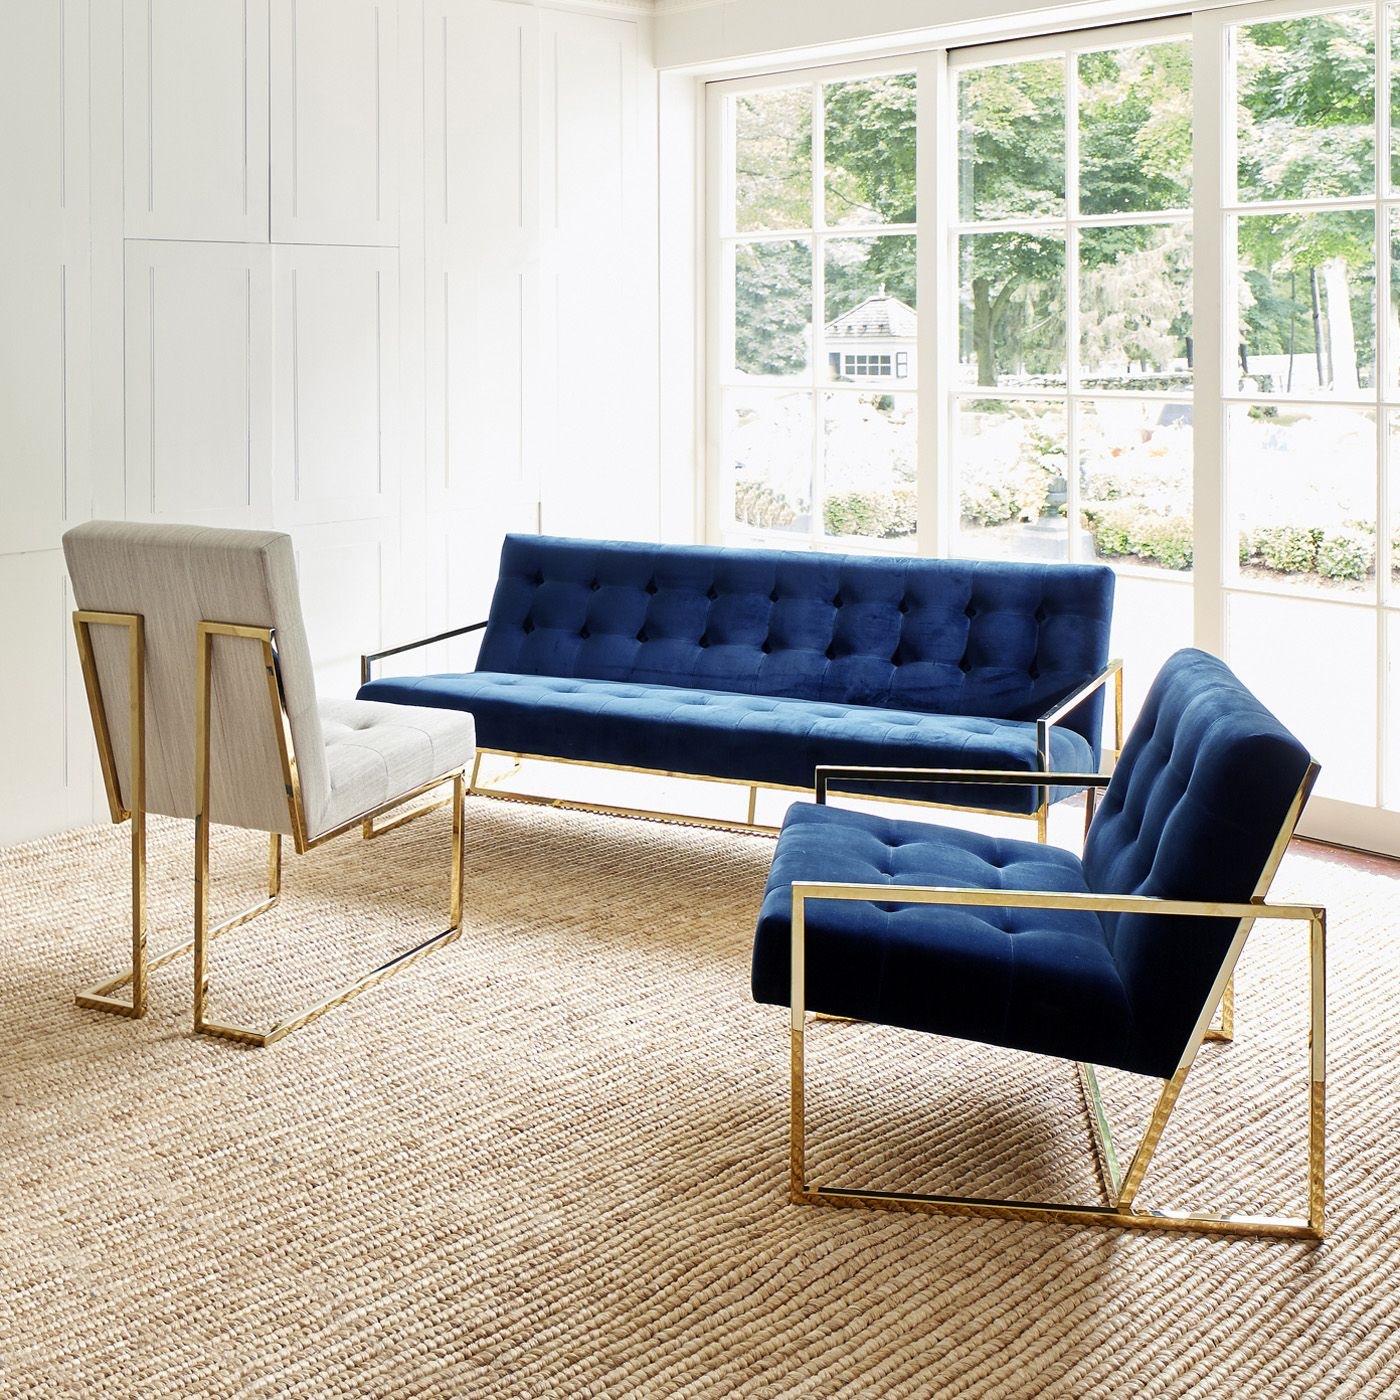 Lapiz Blue: The Pantone Color You Need For Your Velvet Armchair / velvet chairs, chair design, lapiz blue, #modernchairs #colortrends #velvetchairs Discover more: http://modernchairs.eu/lapiz-blue-pantone-color-need-velvet-armchair/